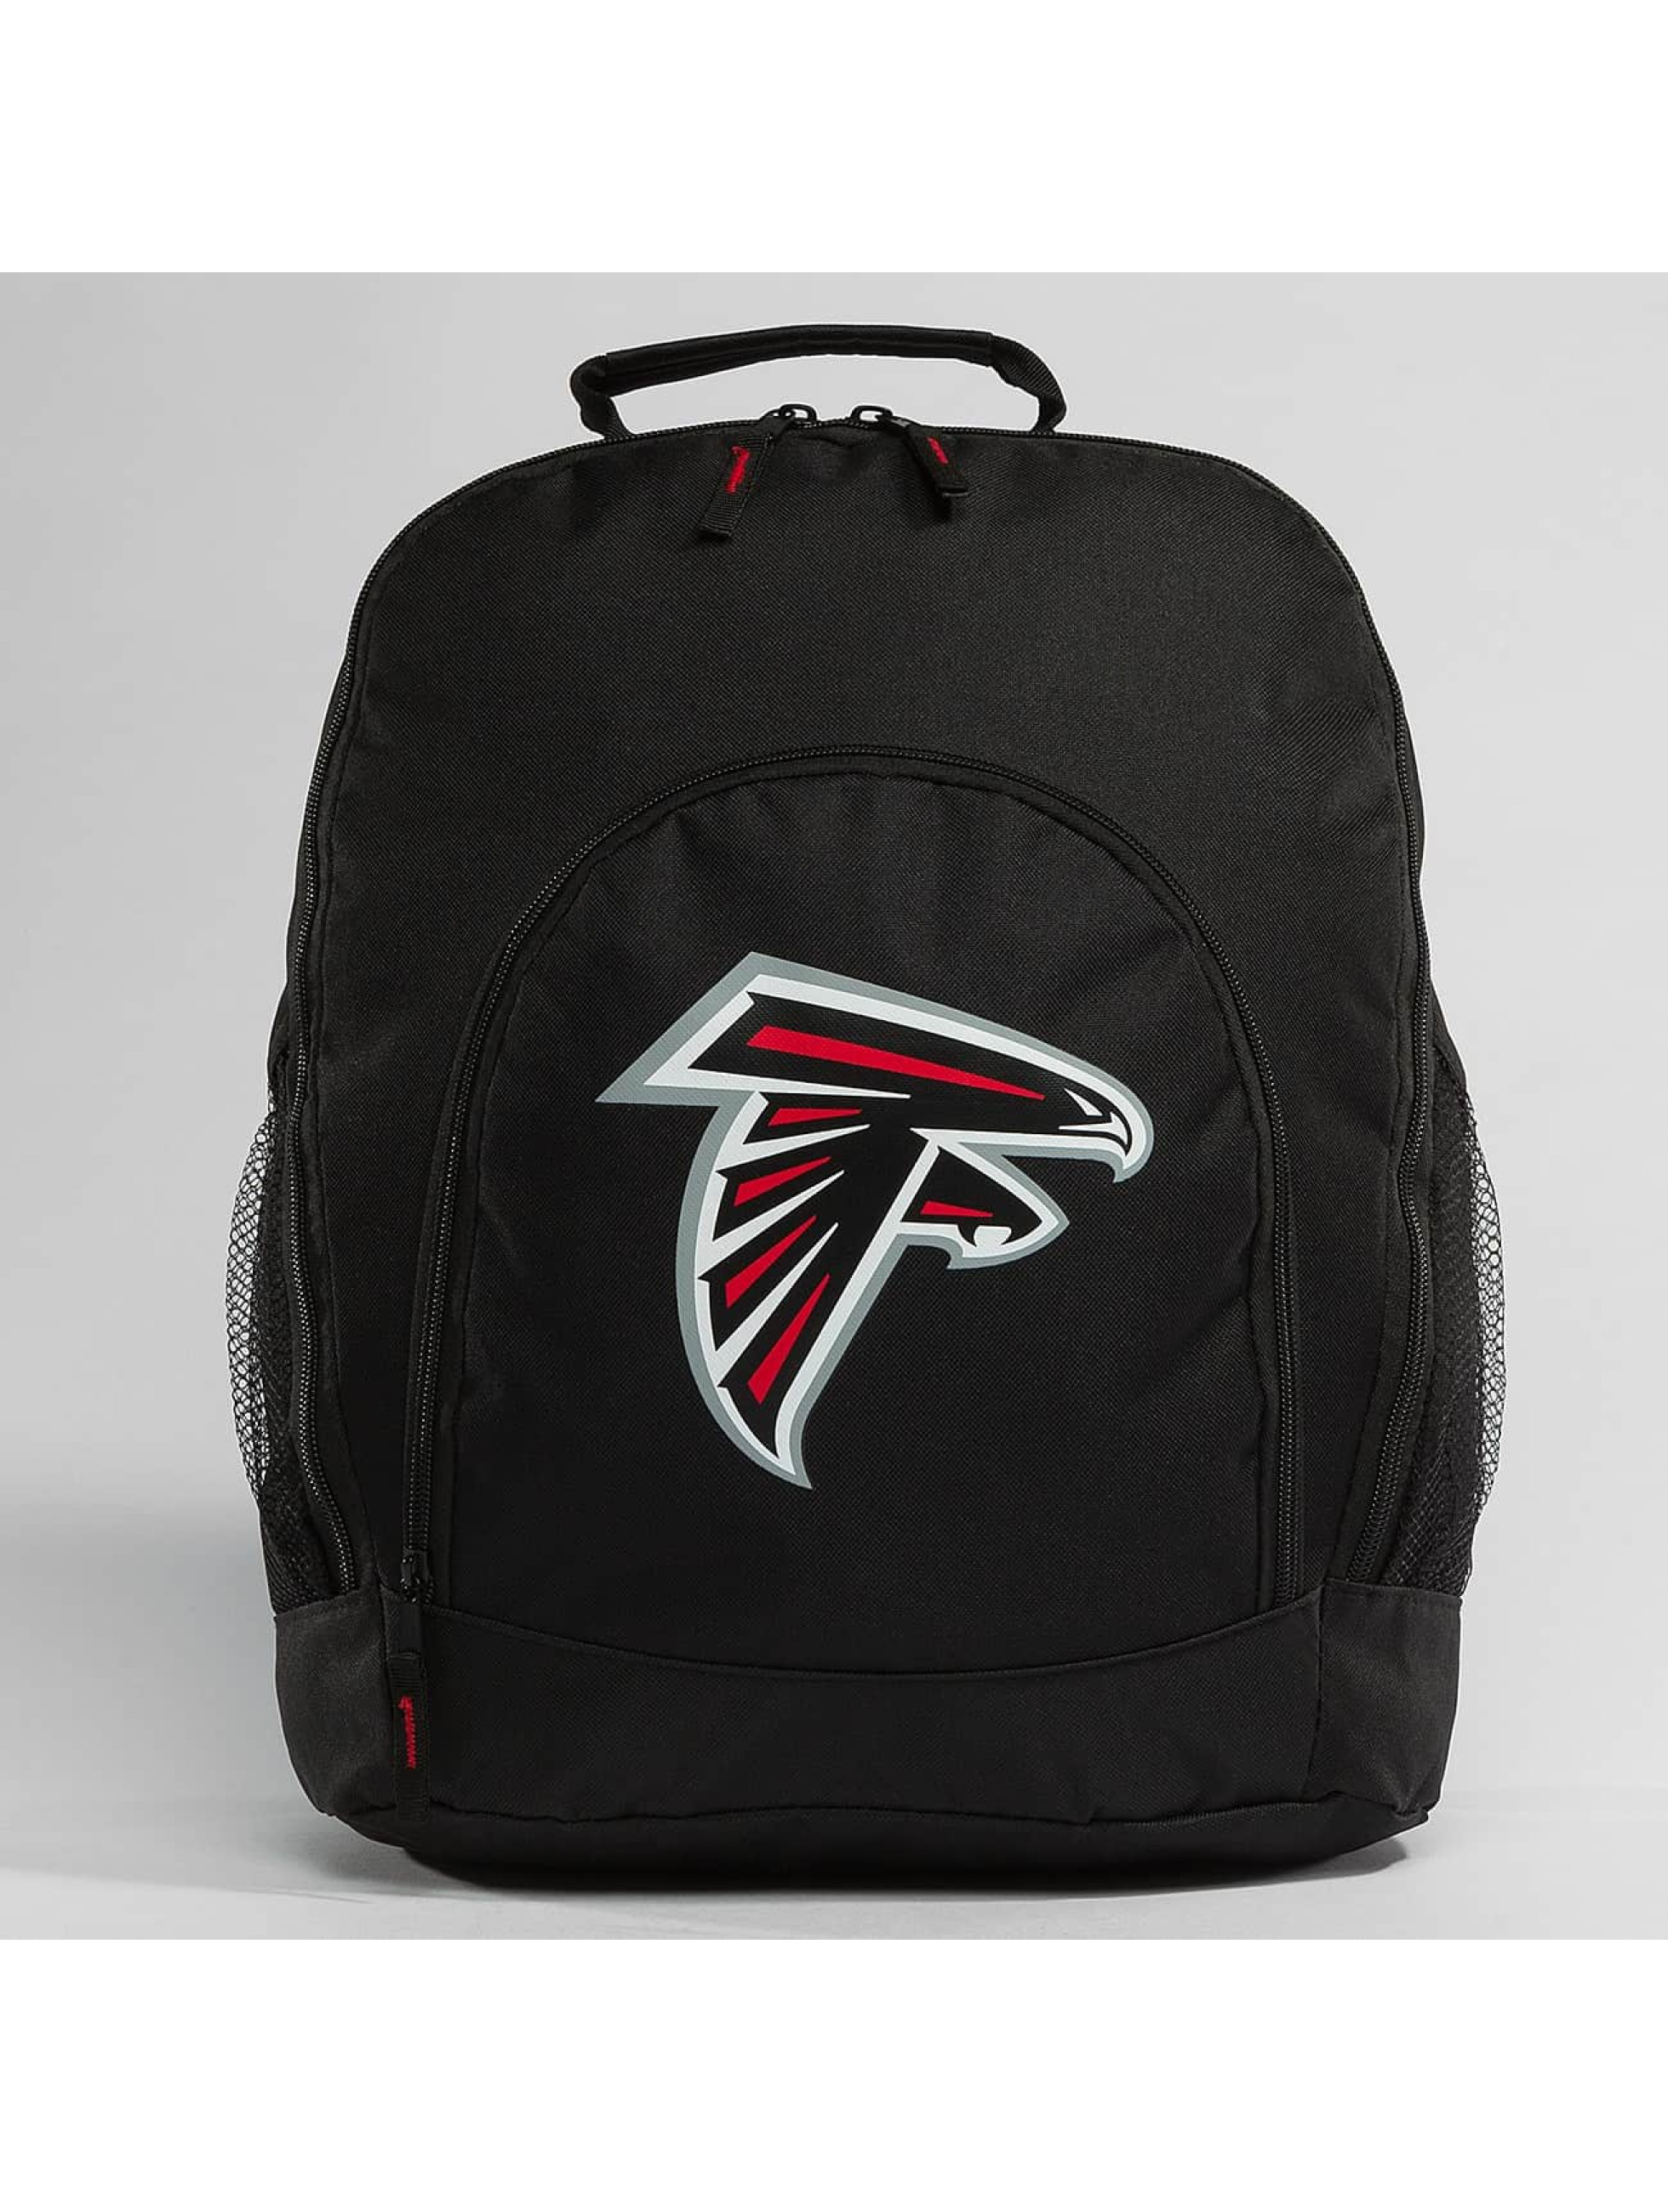 Forever Collectibles Рюкзак NFL Atlanta Falcons черный